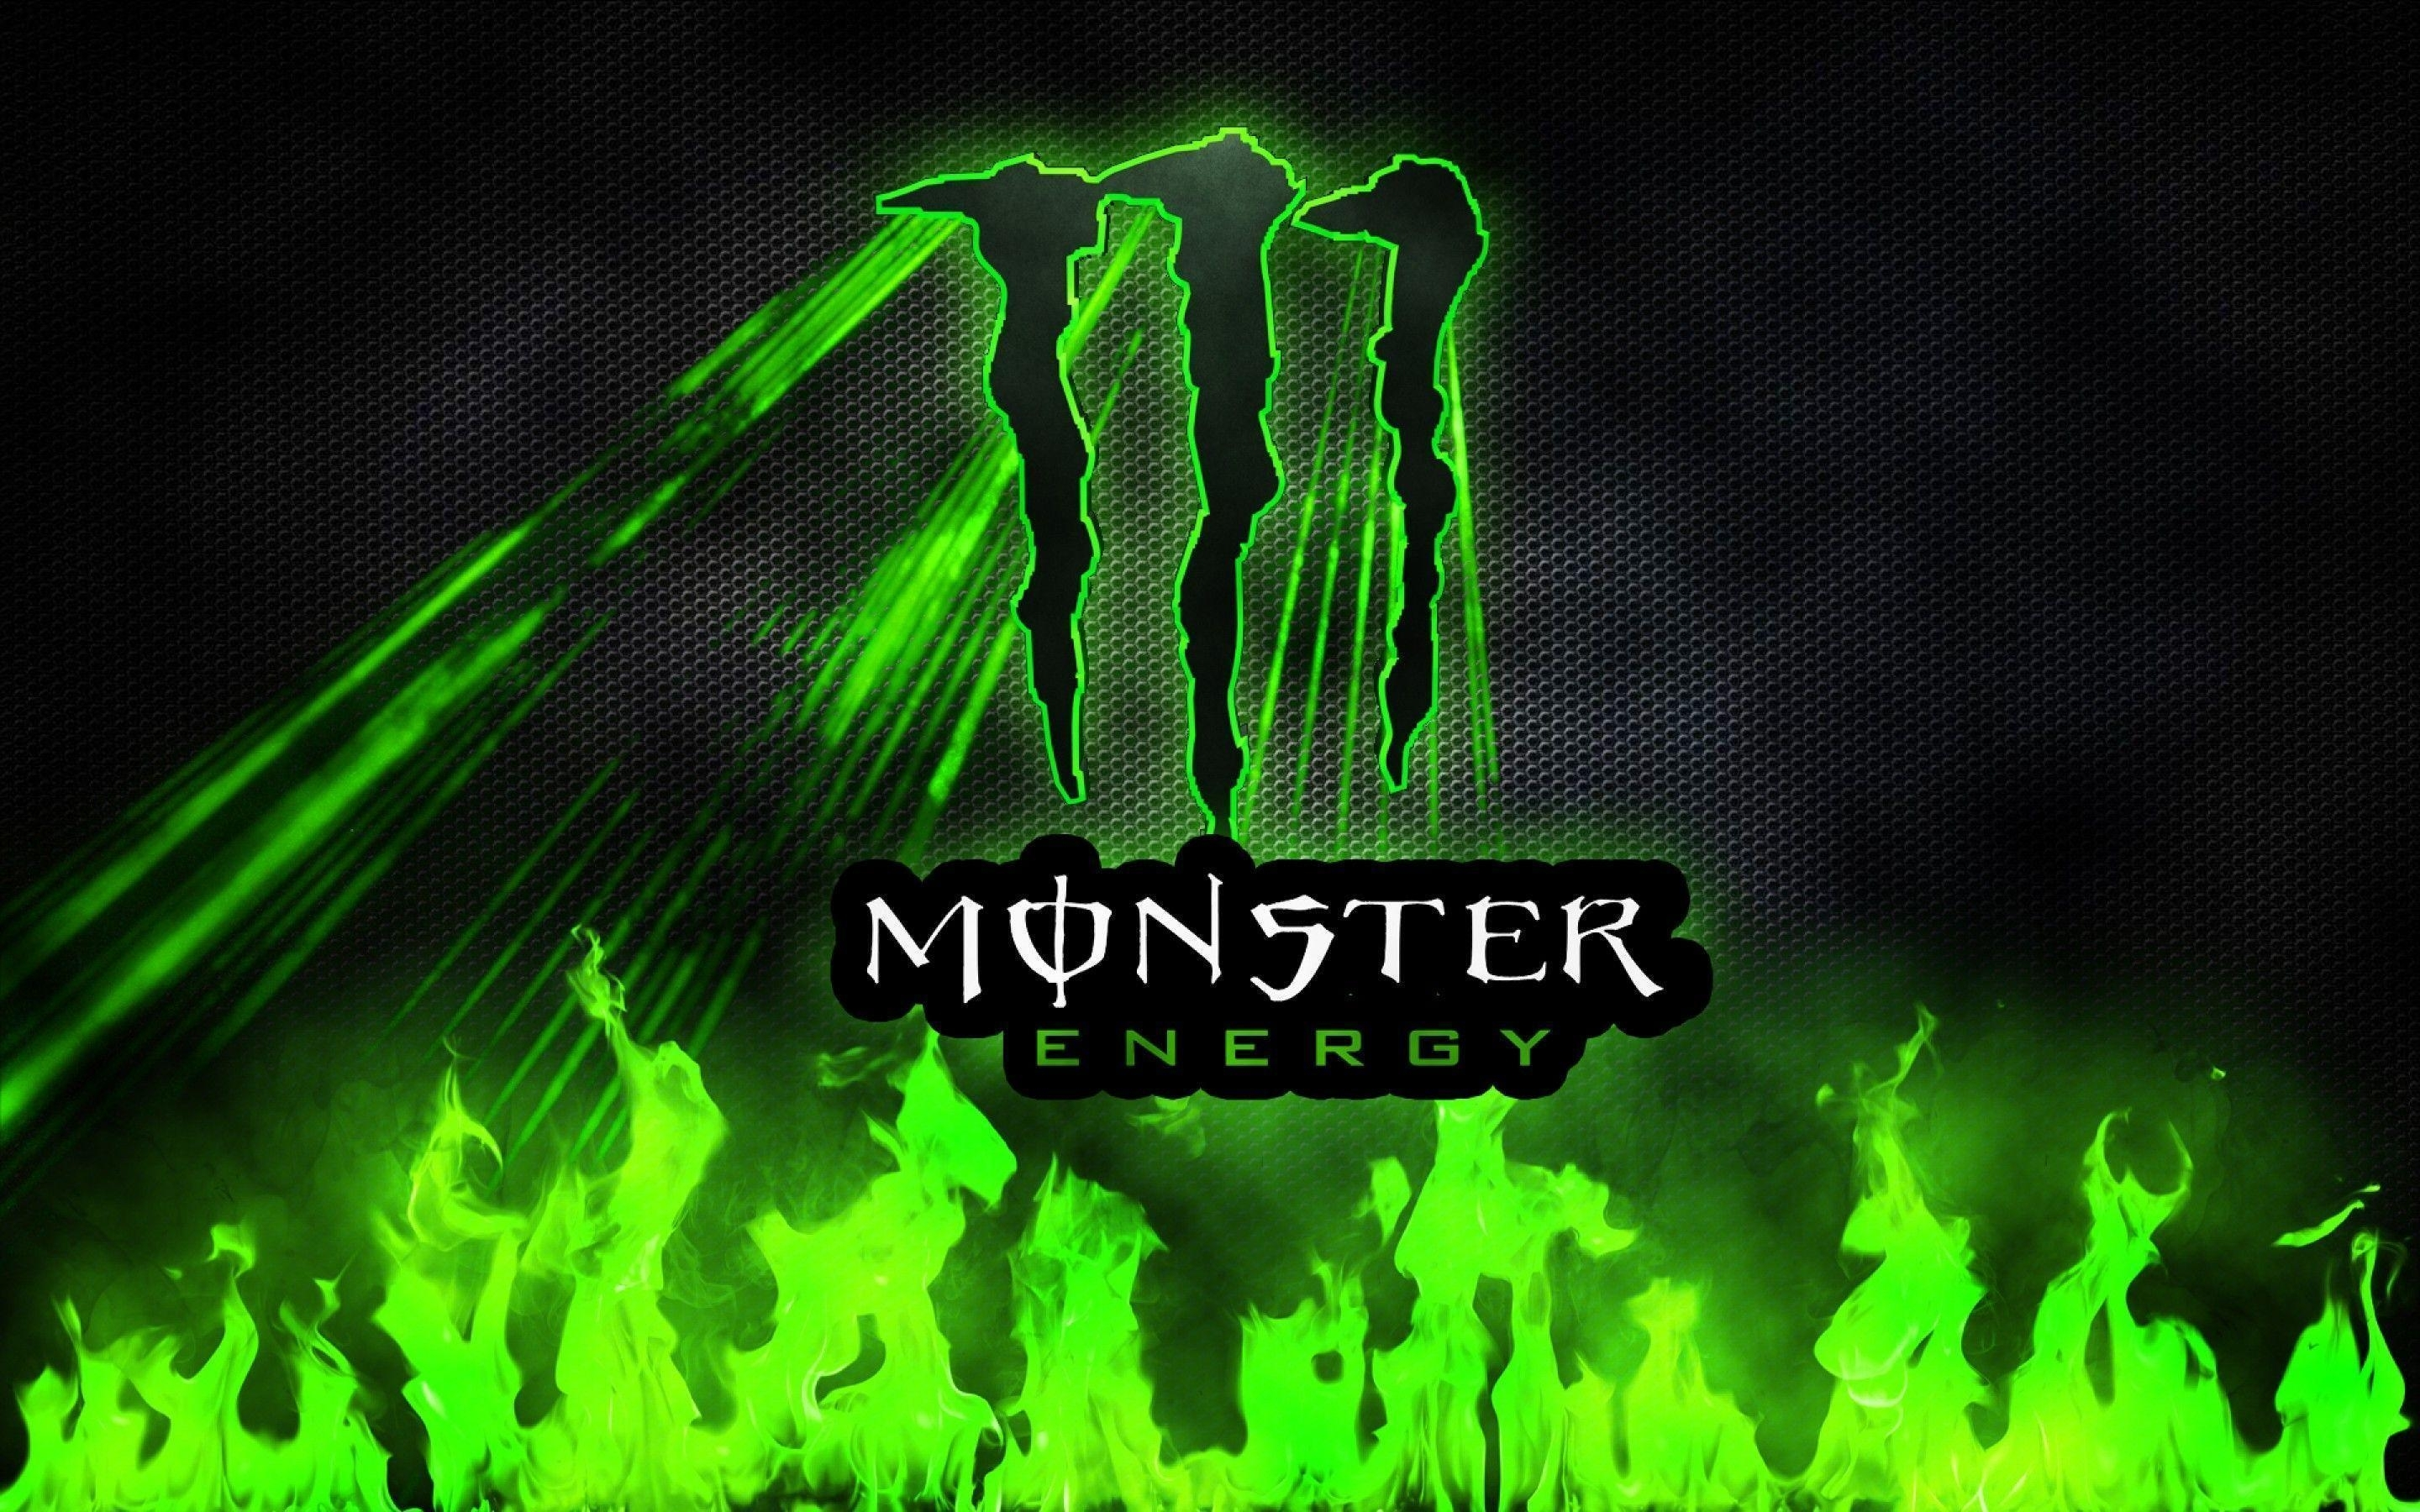 monster energy wallpapers hd 2016 - wallpaper cave